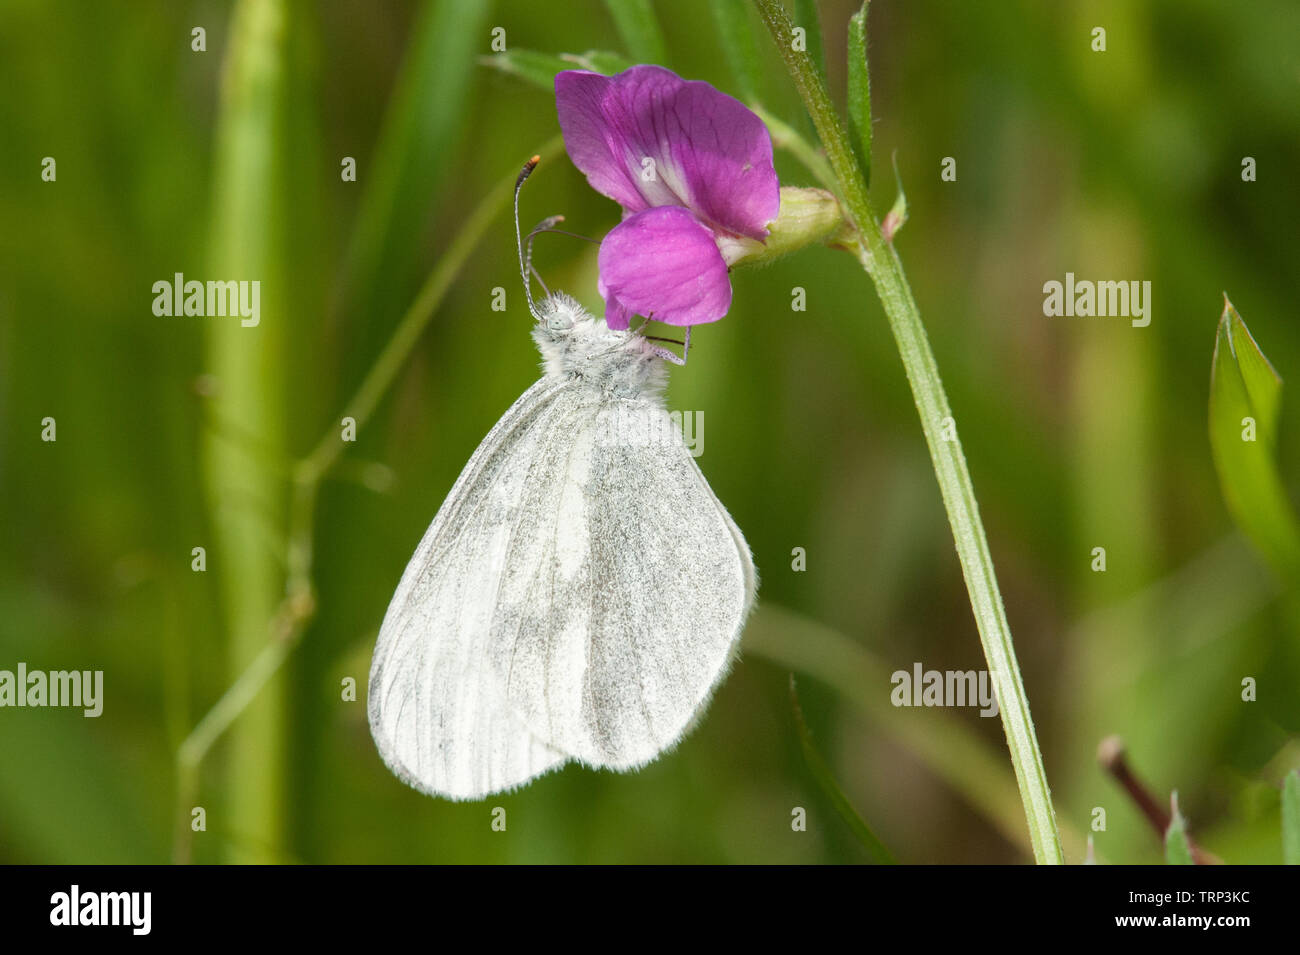 Wood white butterfly nectaring - Stock Image